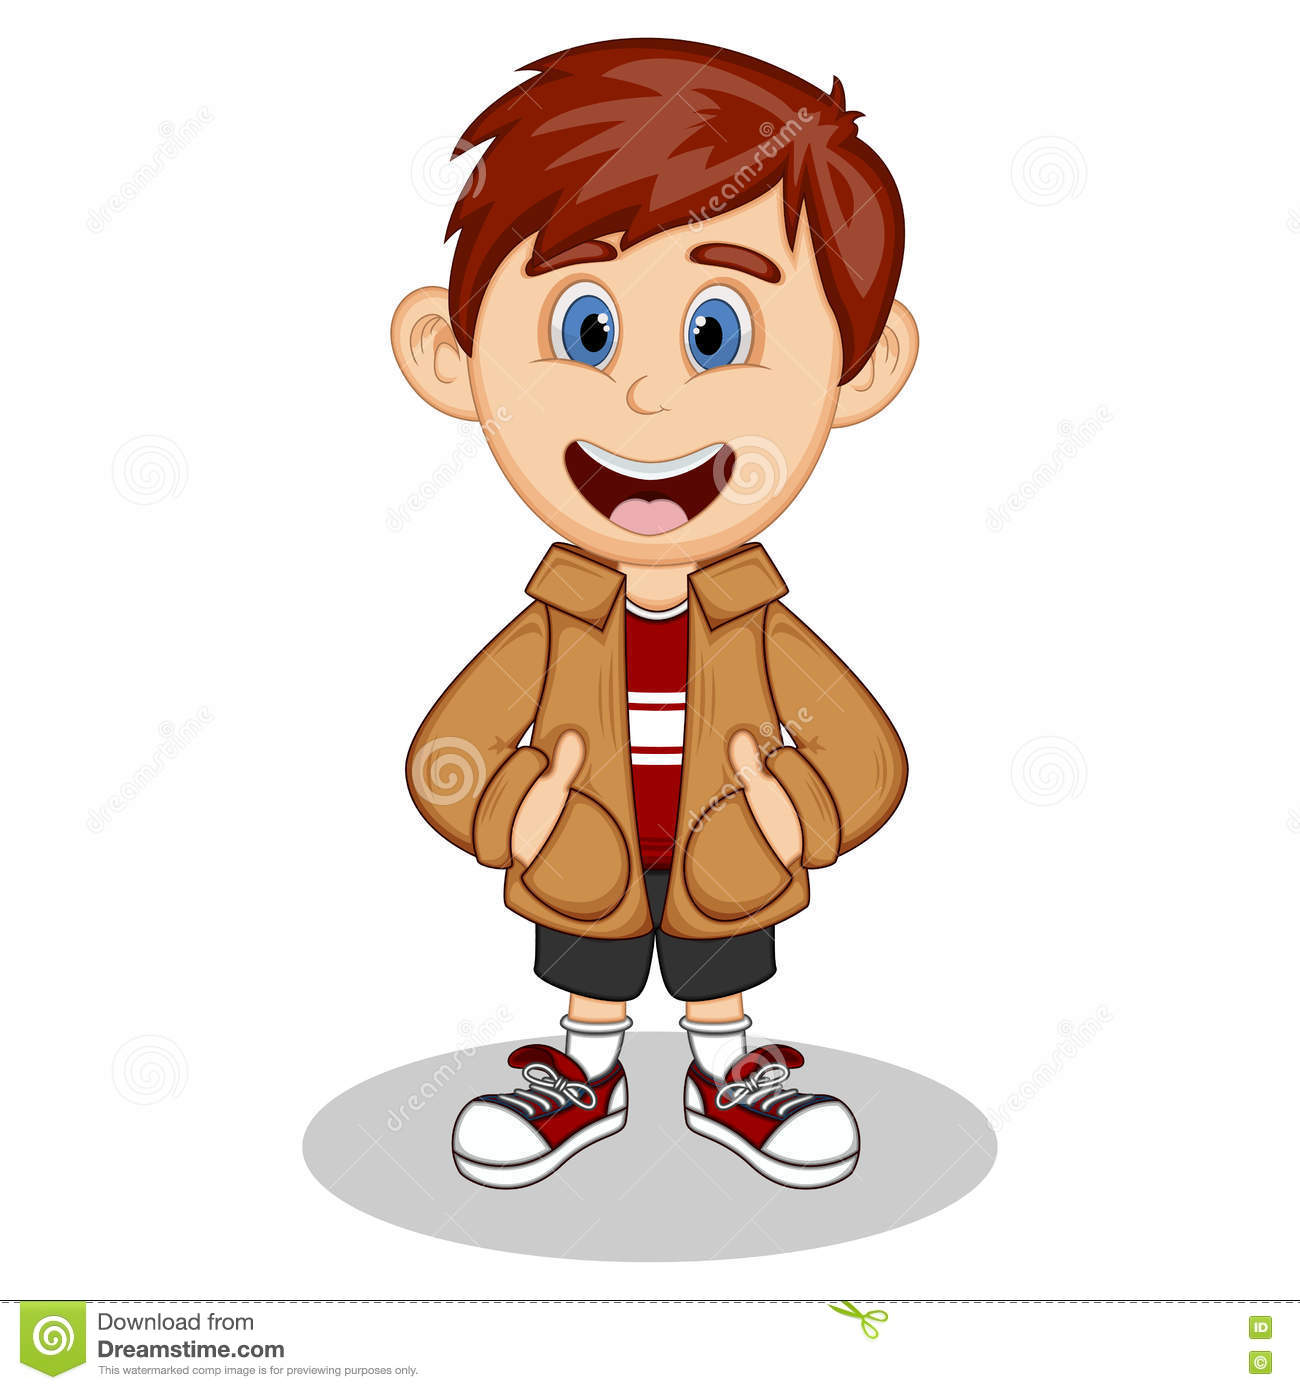 Boy Wearing Jacket Clipart.